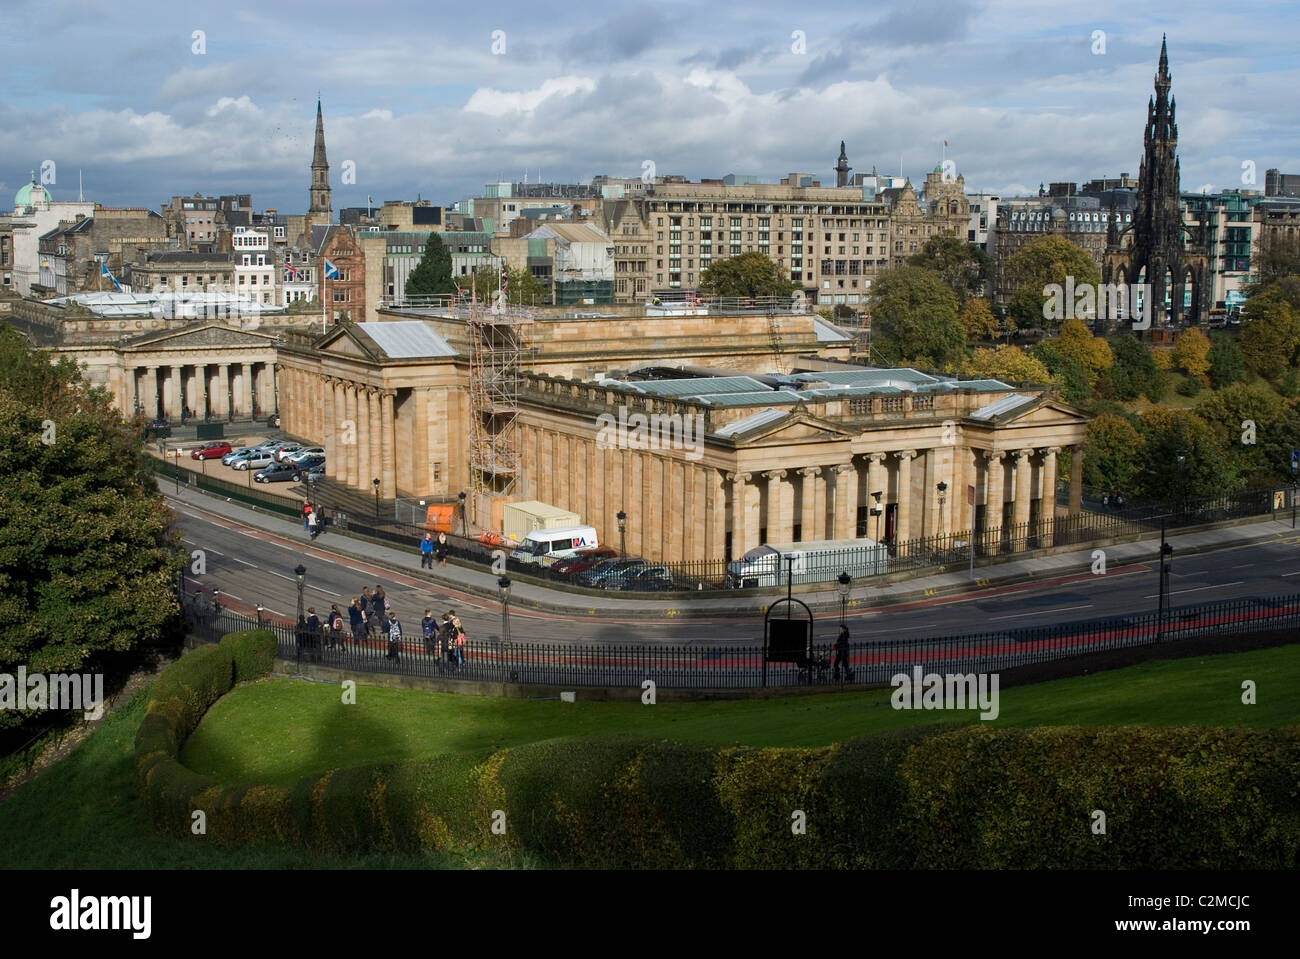 The National Gallery of Scotland seen from the Royal Mile, Edinburgh. Stock Photo